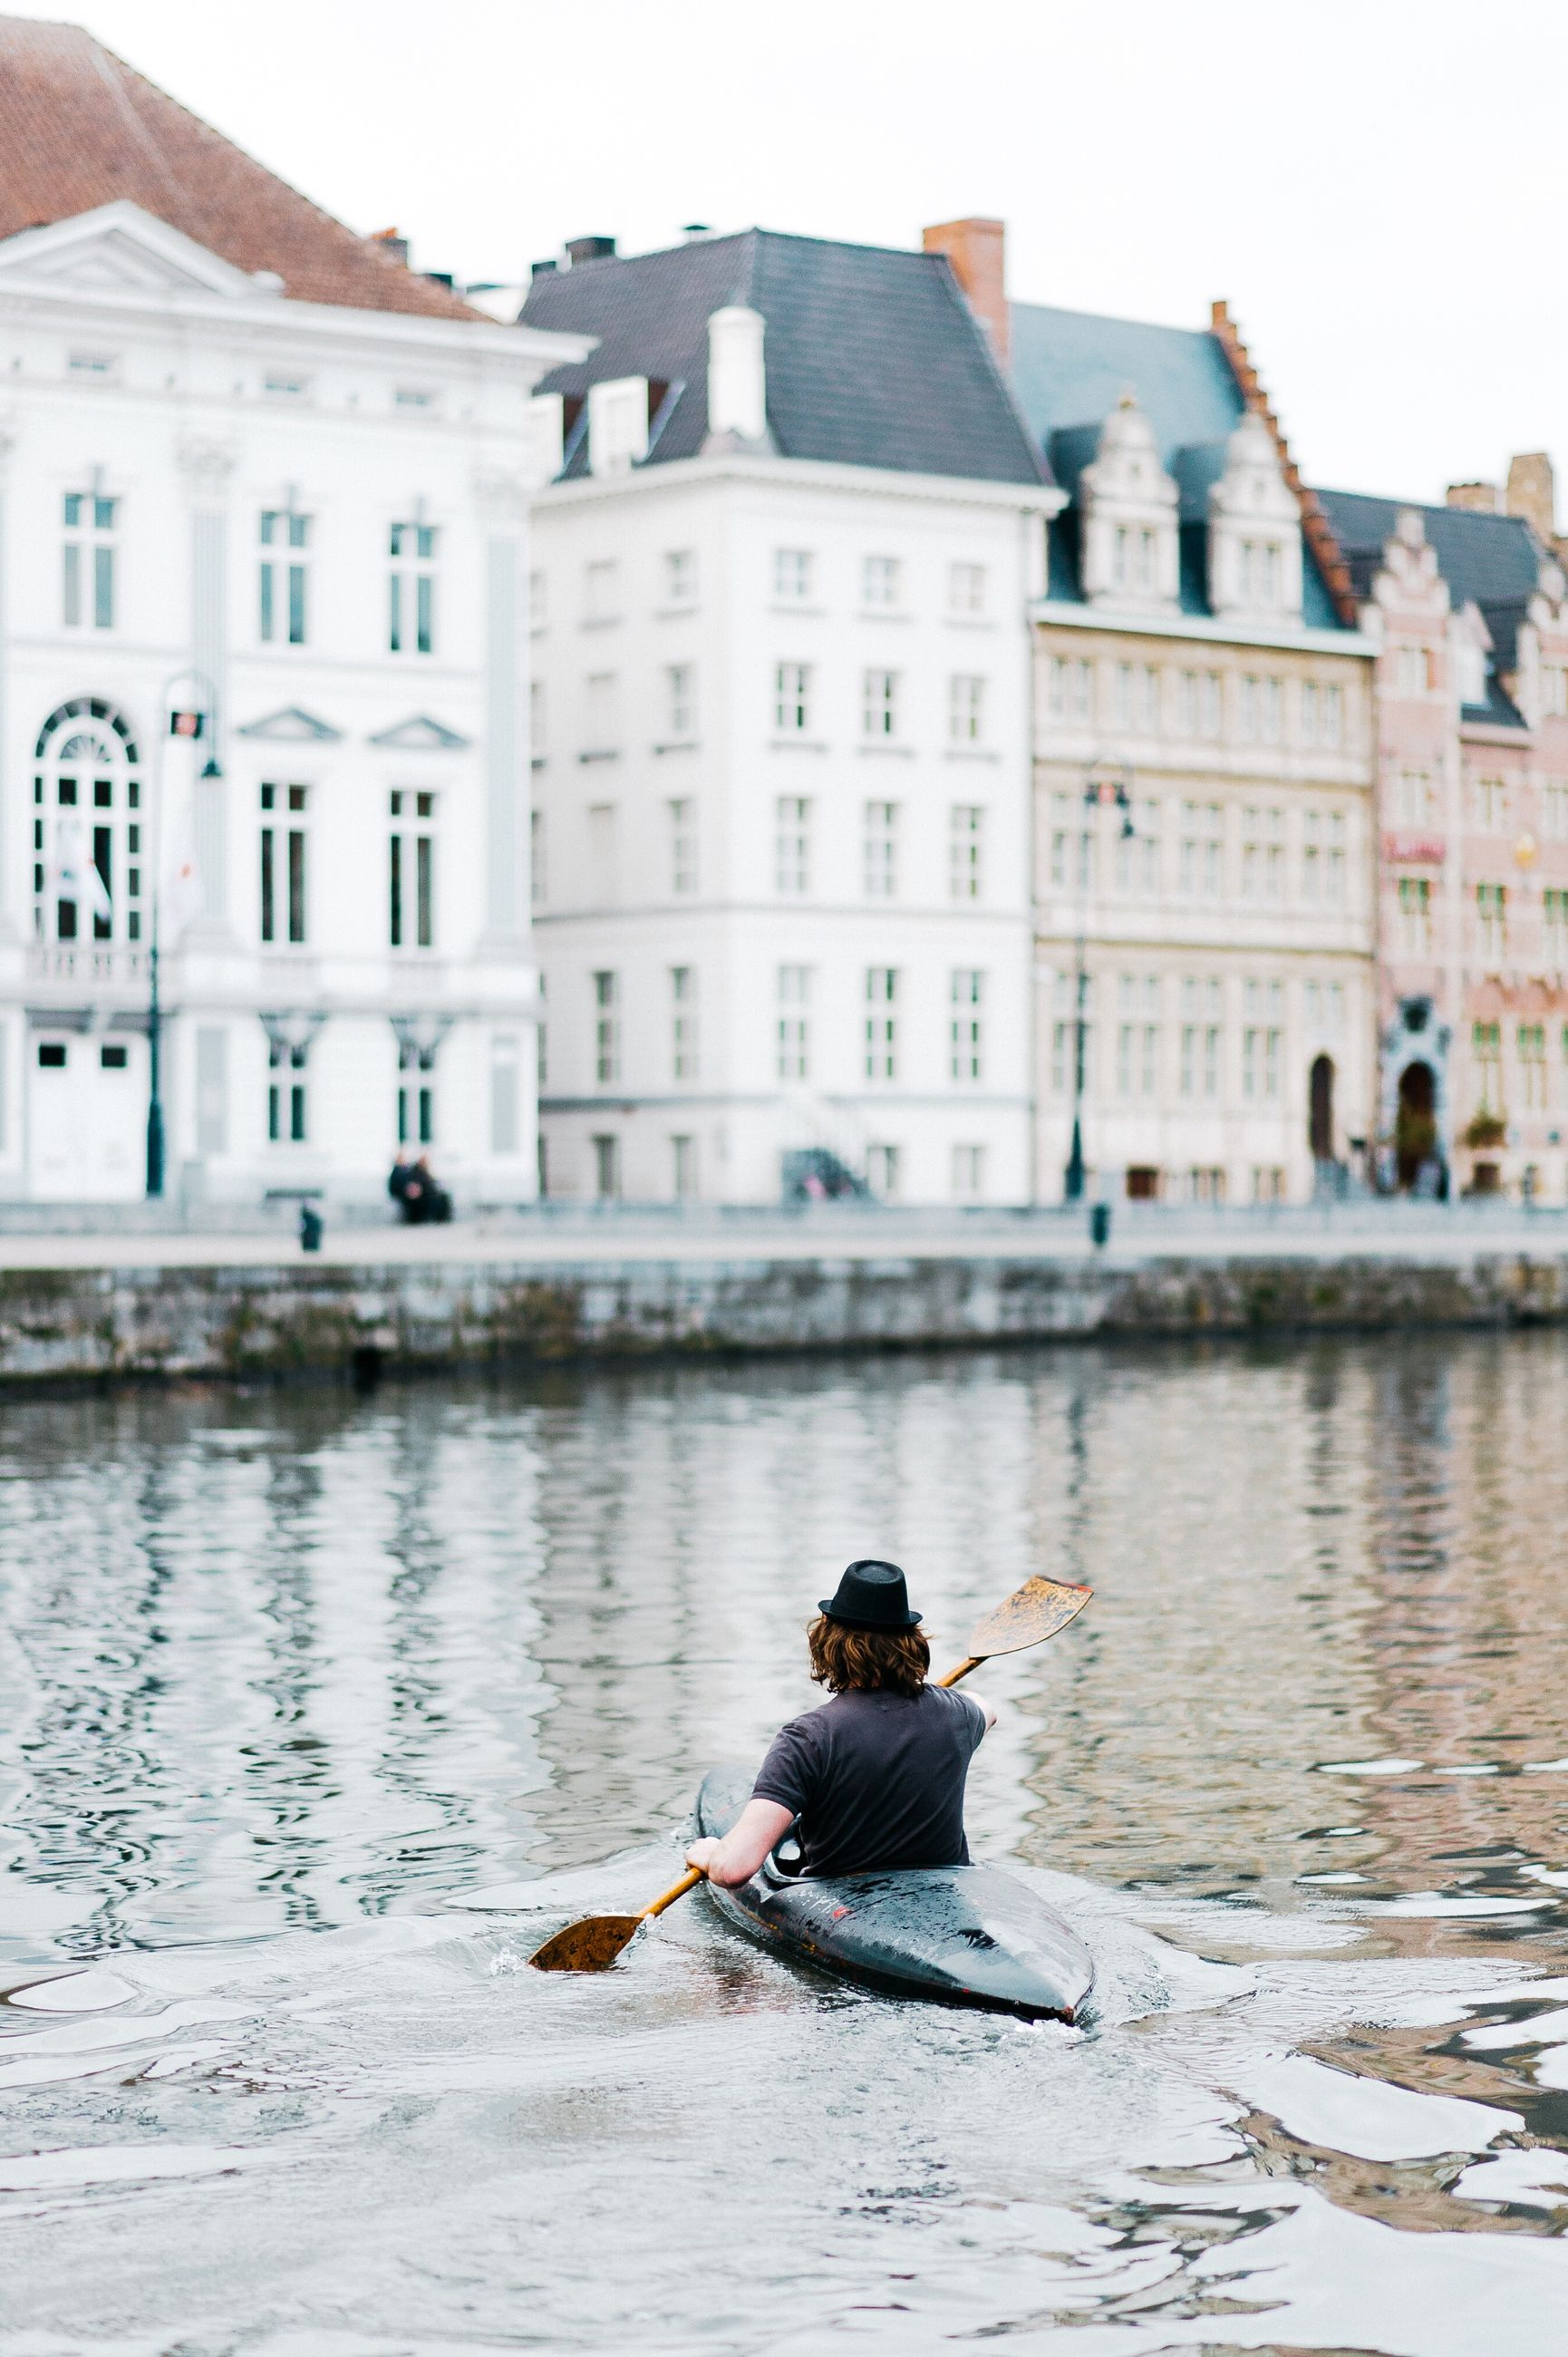 architecture, building exterior, water, sitting, travel destinations, built structure, one person, day, city, bird, outdoors, gondola - traditional boat, rowing, gondolier, people, animal themes, one man only, adult, adults only